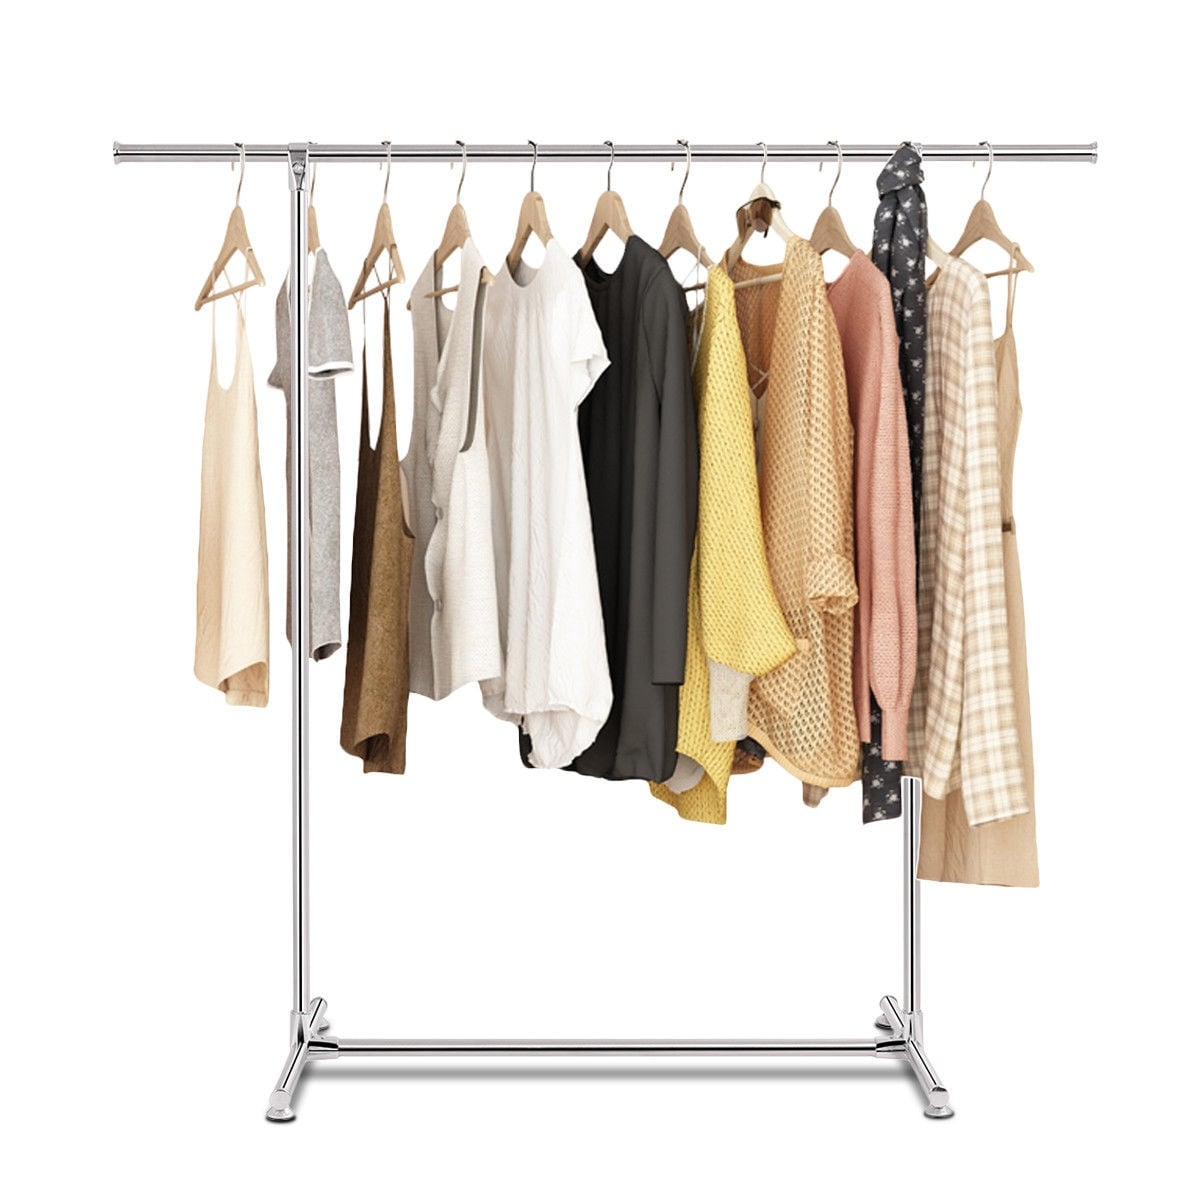 Shop Costway Heavy Duty Stainless Steel Garment Rack Clothes Hanging